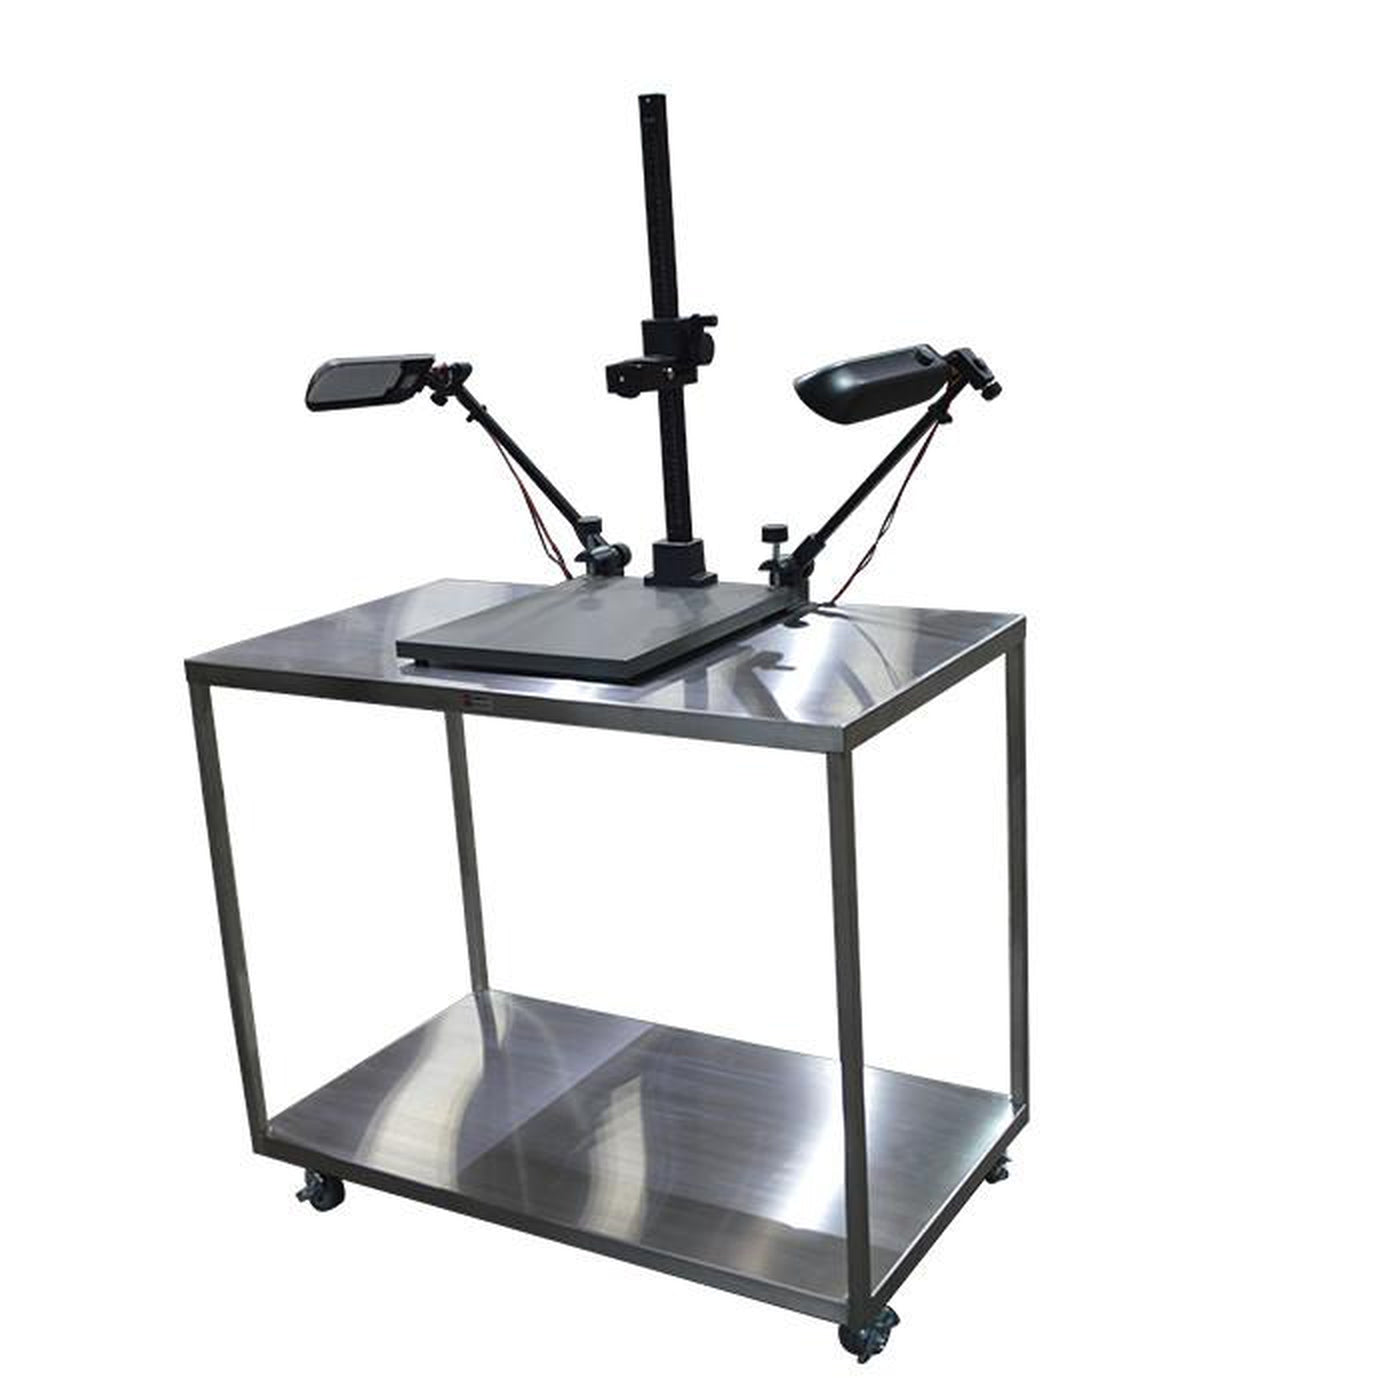 Specimen Photo Table-Laboratory Accessory-Mortech Manufacturing Company Inc. Quality Stainless Steel Autopsy, Morgue, Funeral Home, Necropsy, Veterinary / Anatomy, Dissection Equipment and Accessories